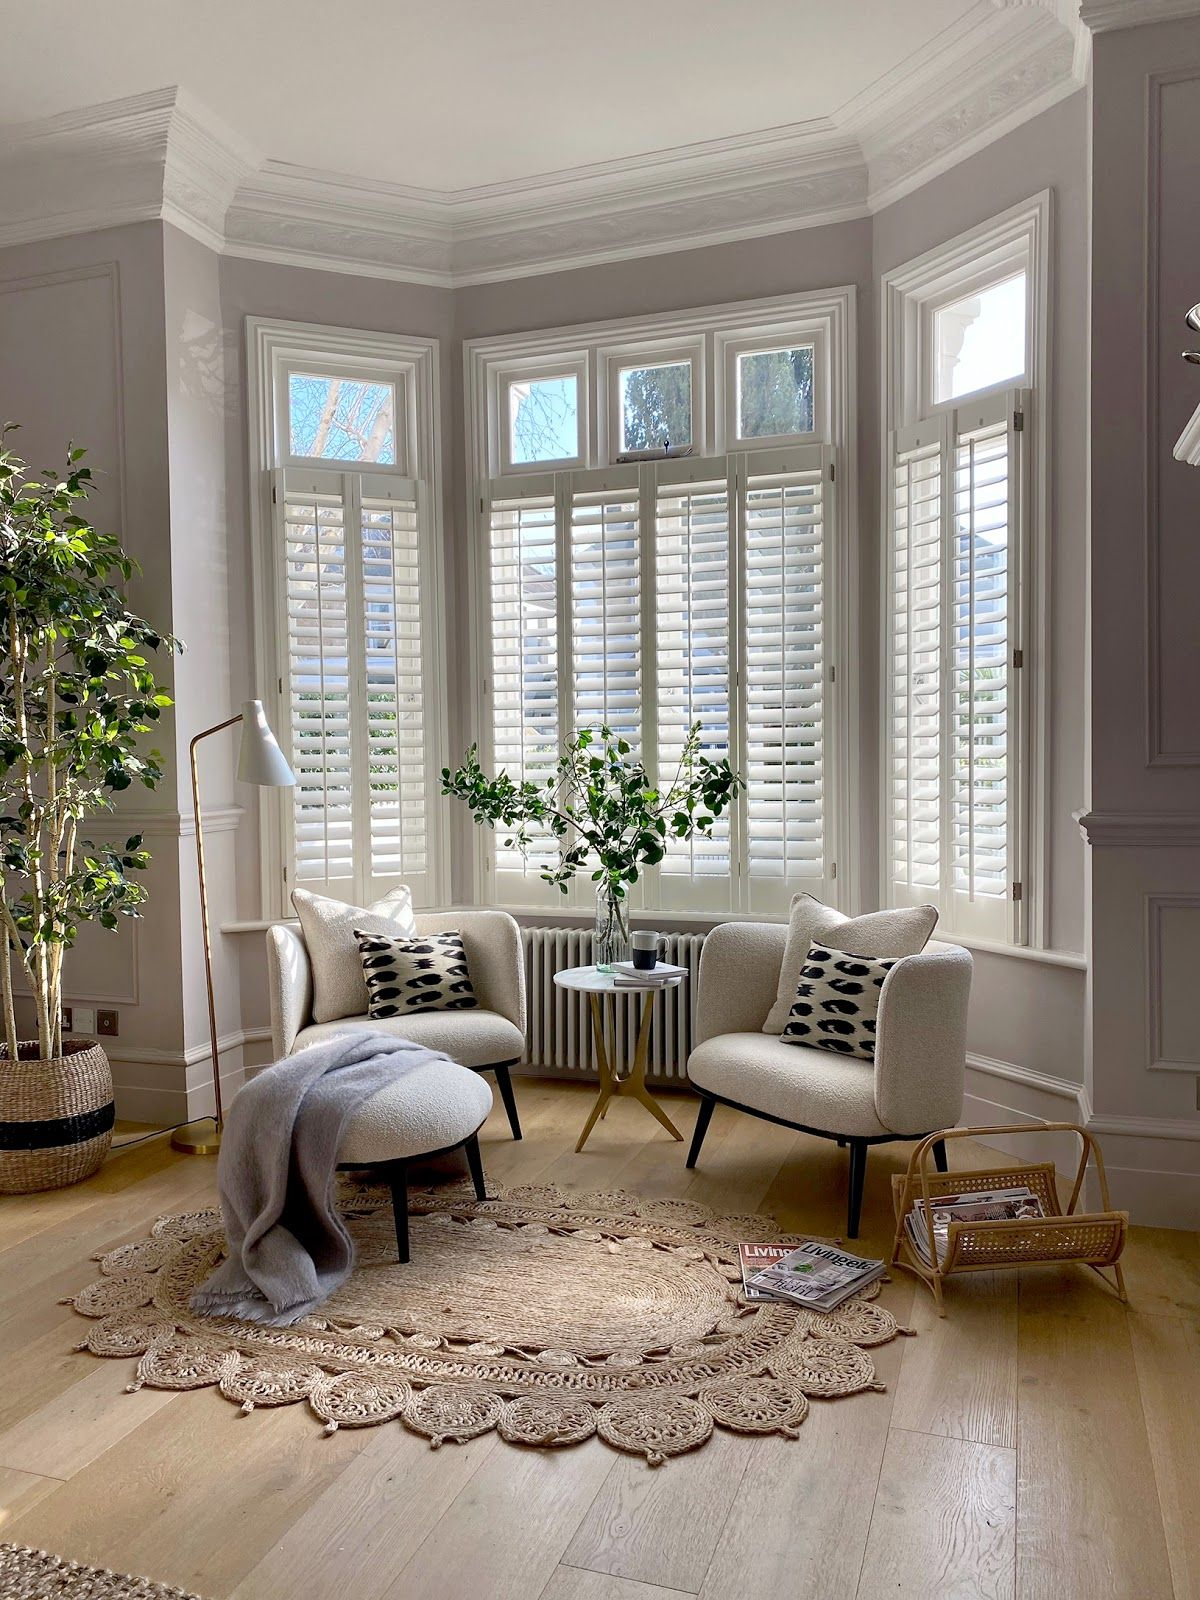 How to Style a Beautiful Bay Window